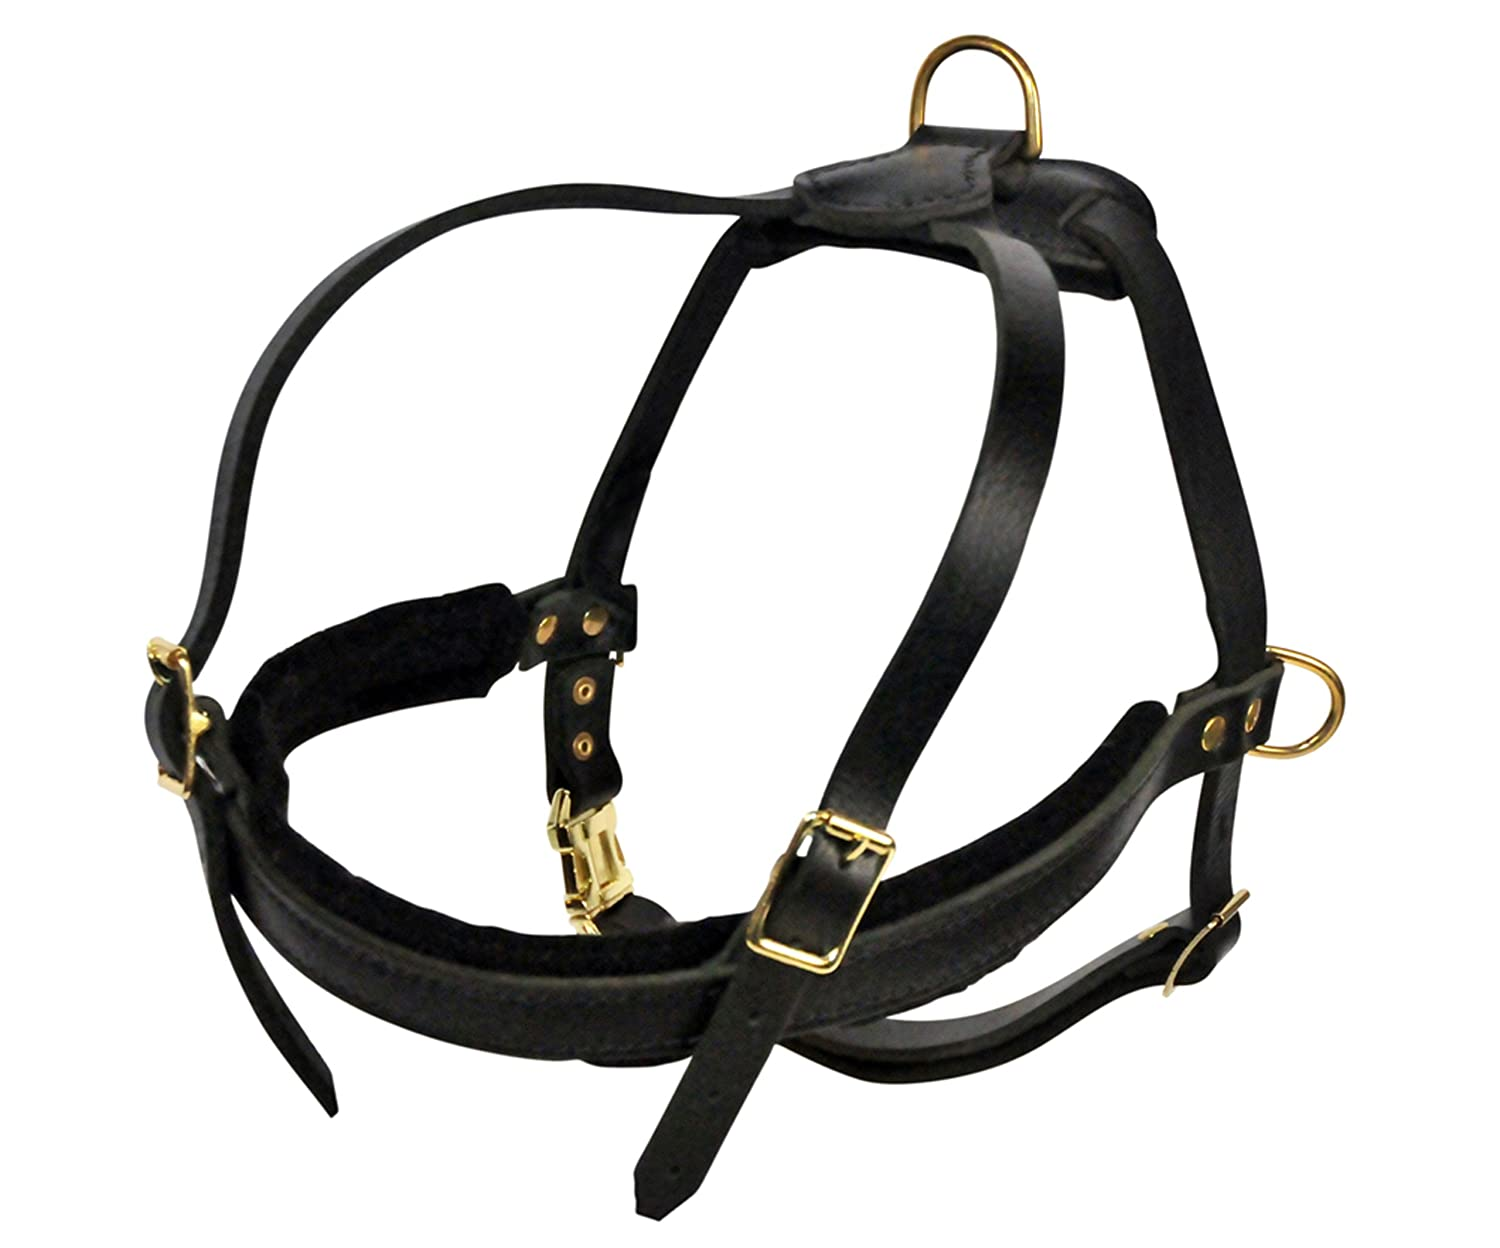 Dean and Tyler The Cowboy Solid Brass Hardware Leather Dog Harness, Black, Small Fits Girth Size  20.5-Inch to 28.5-Inch